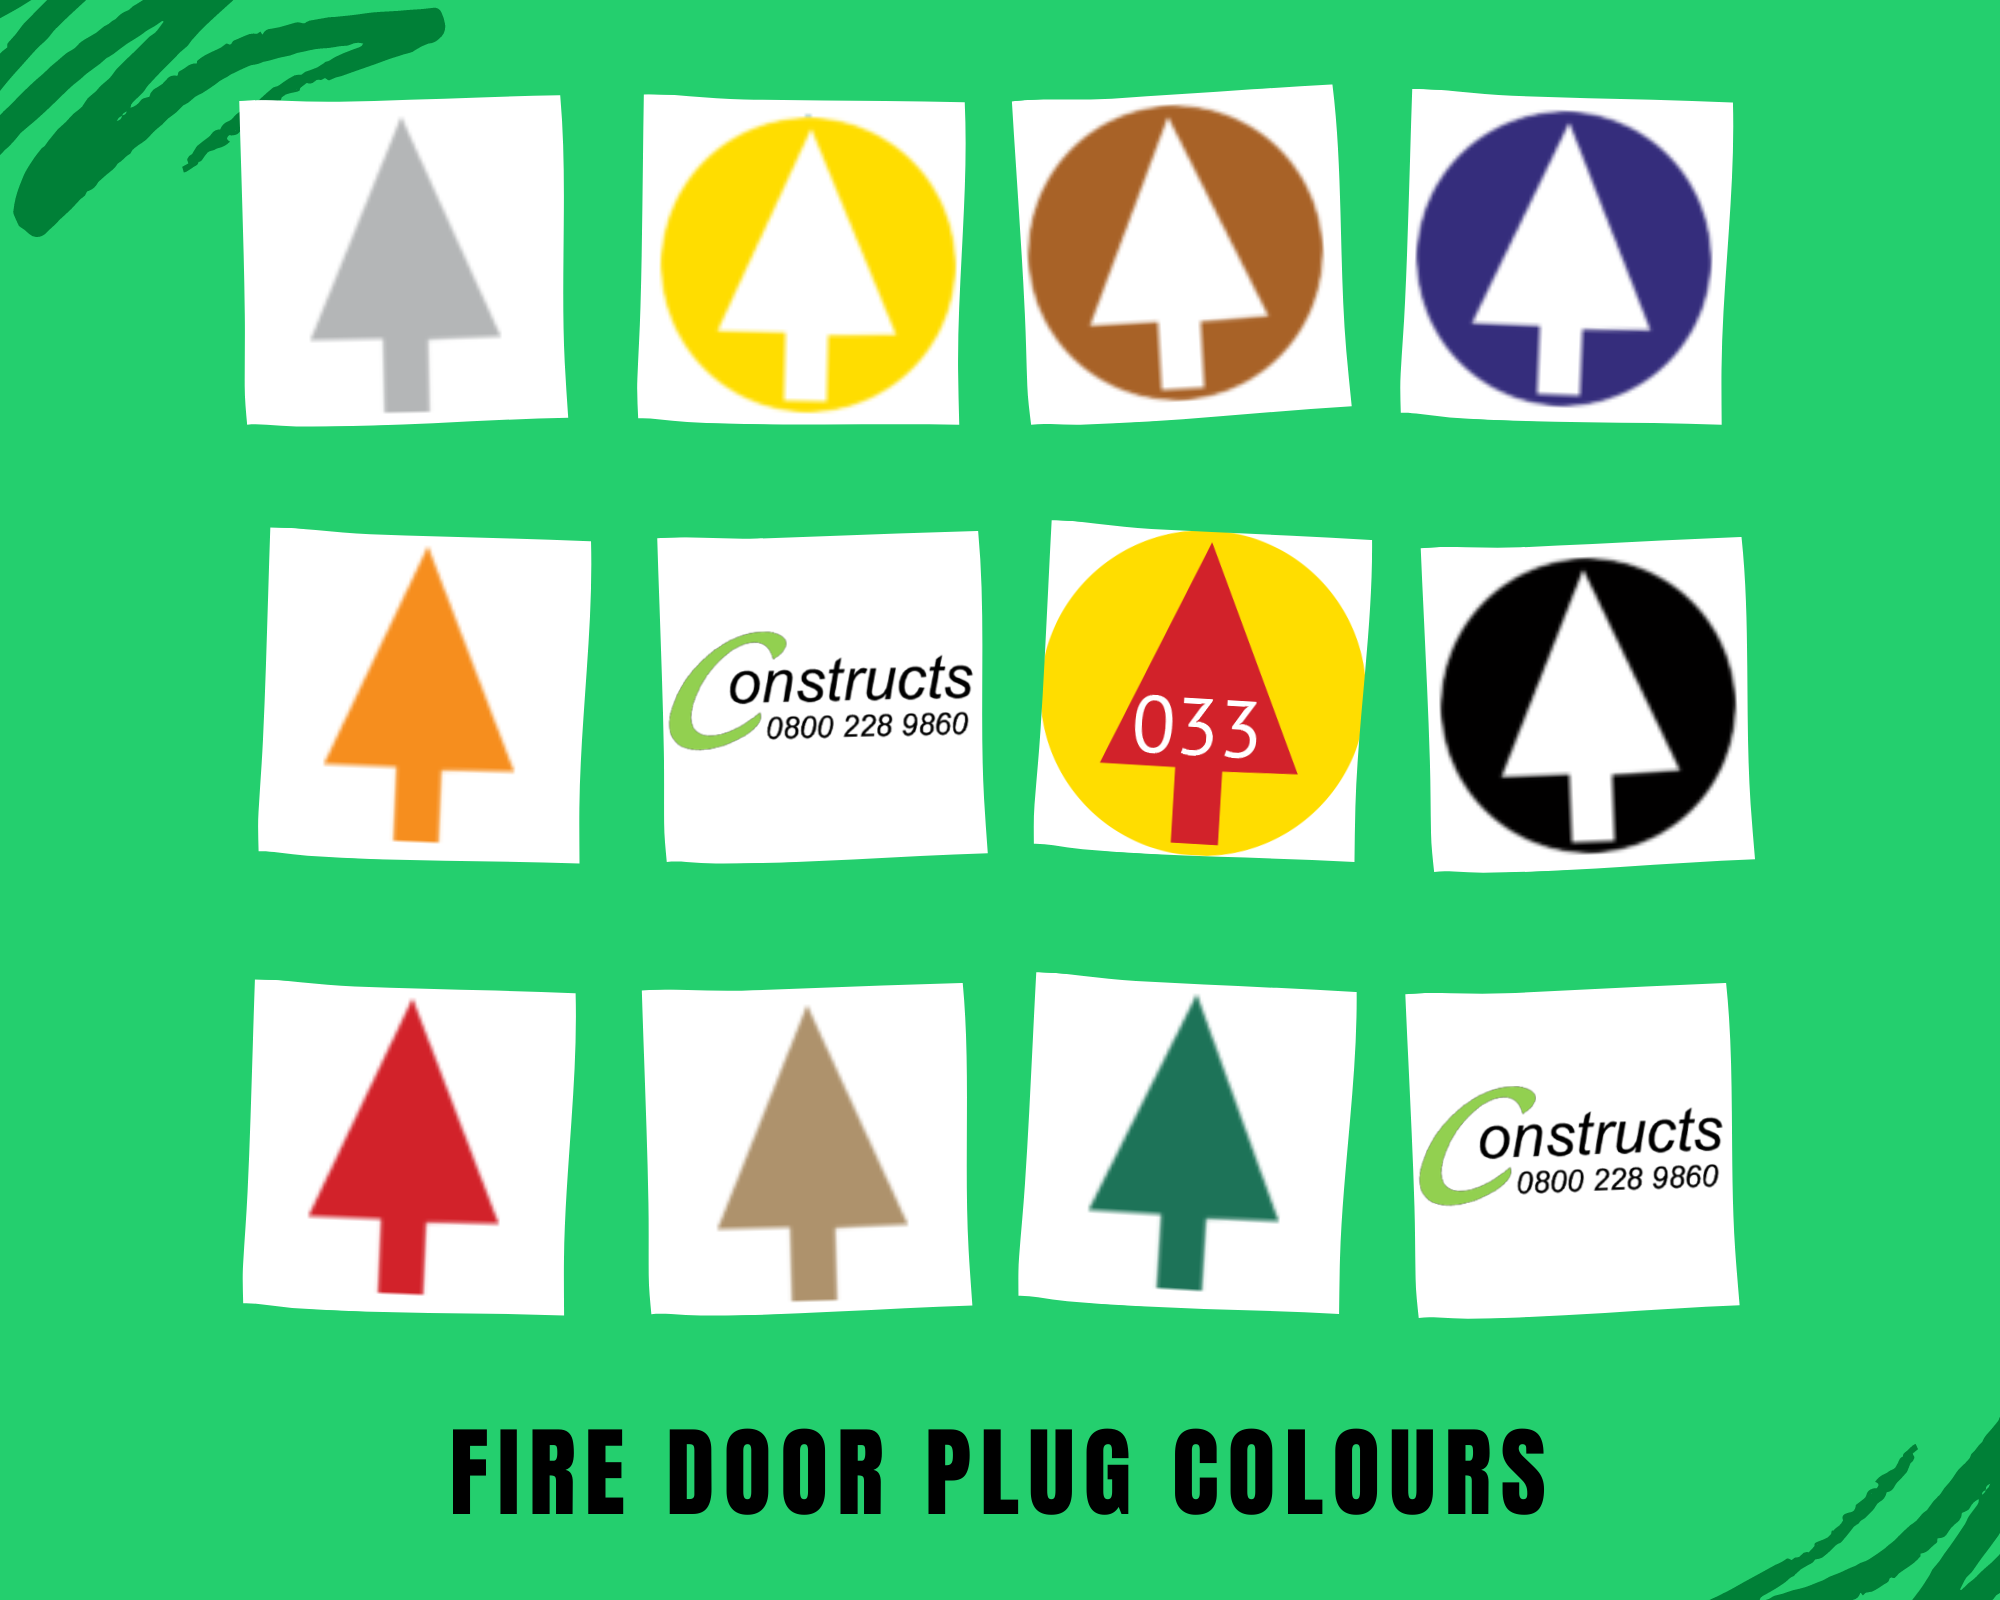 Q Mark Fire Door Installers UK Accredited Somerset Carpenters BM Trada FD Identification Plugs TREE COLOURS